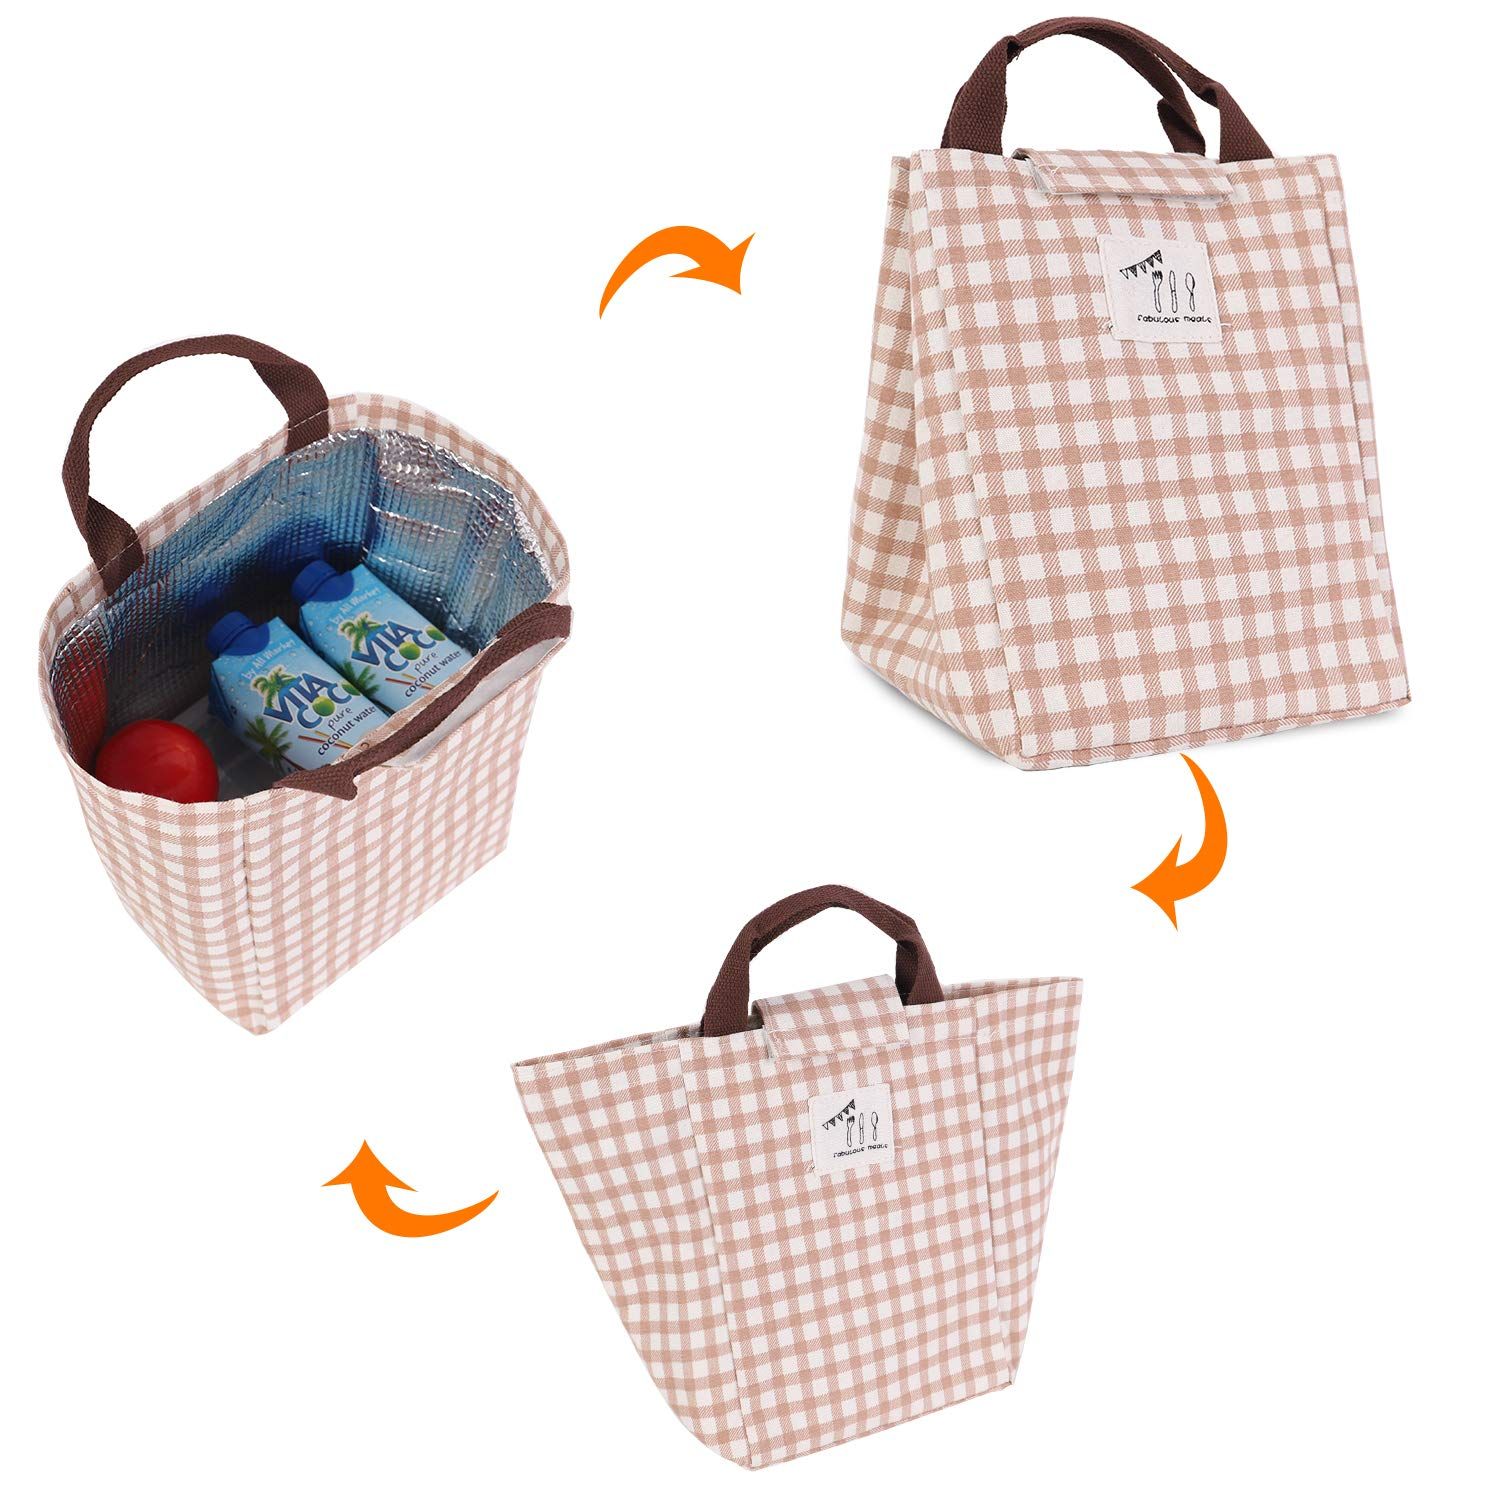 HOMESPON Reusable Lunch Bags Printed Canvas Fabric with Insulated Waterproof Aluminum Foil Kids Lunch Box Tote Handbag for Women Students Blue Shark